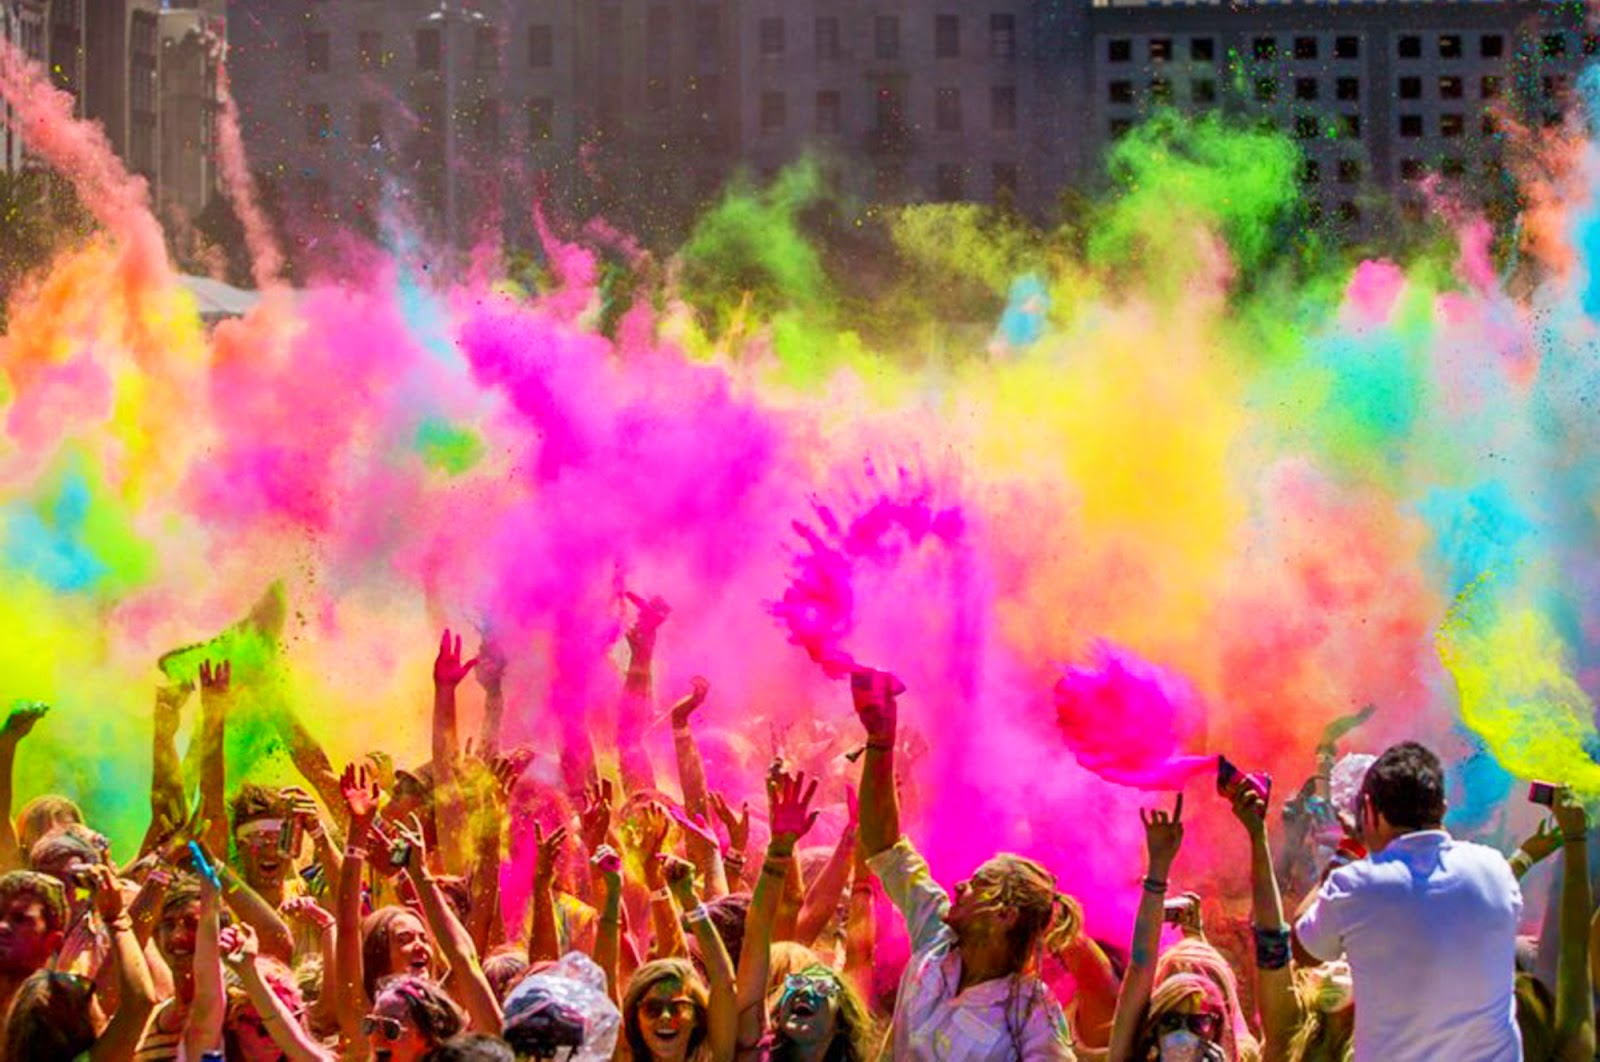 Hapy Holi images  for fb